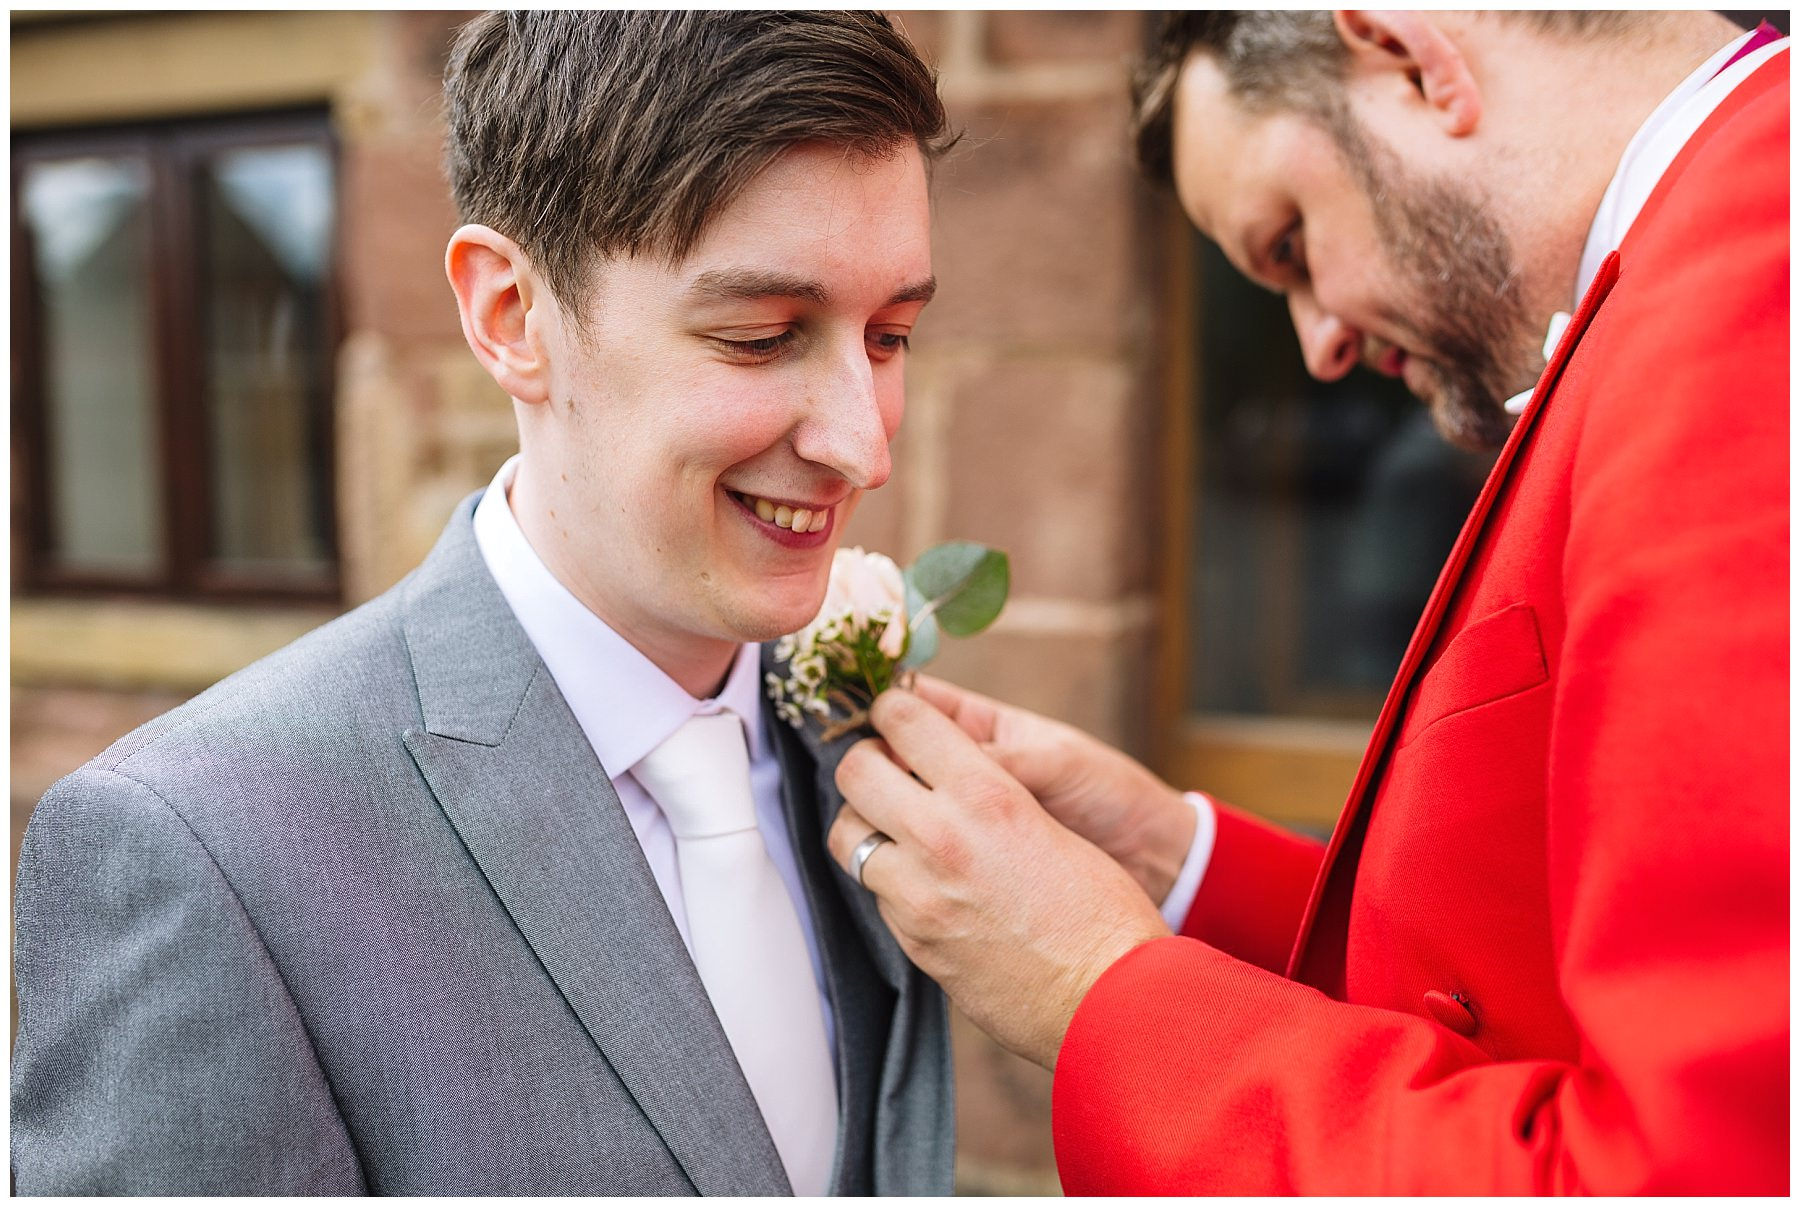 Toastmaster assists with grooms buttonhole